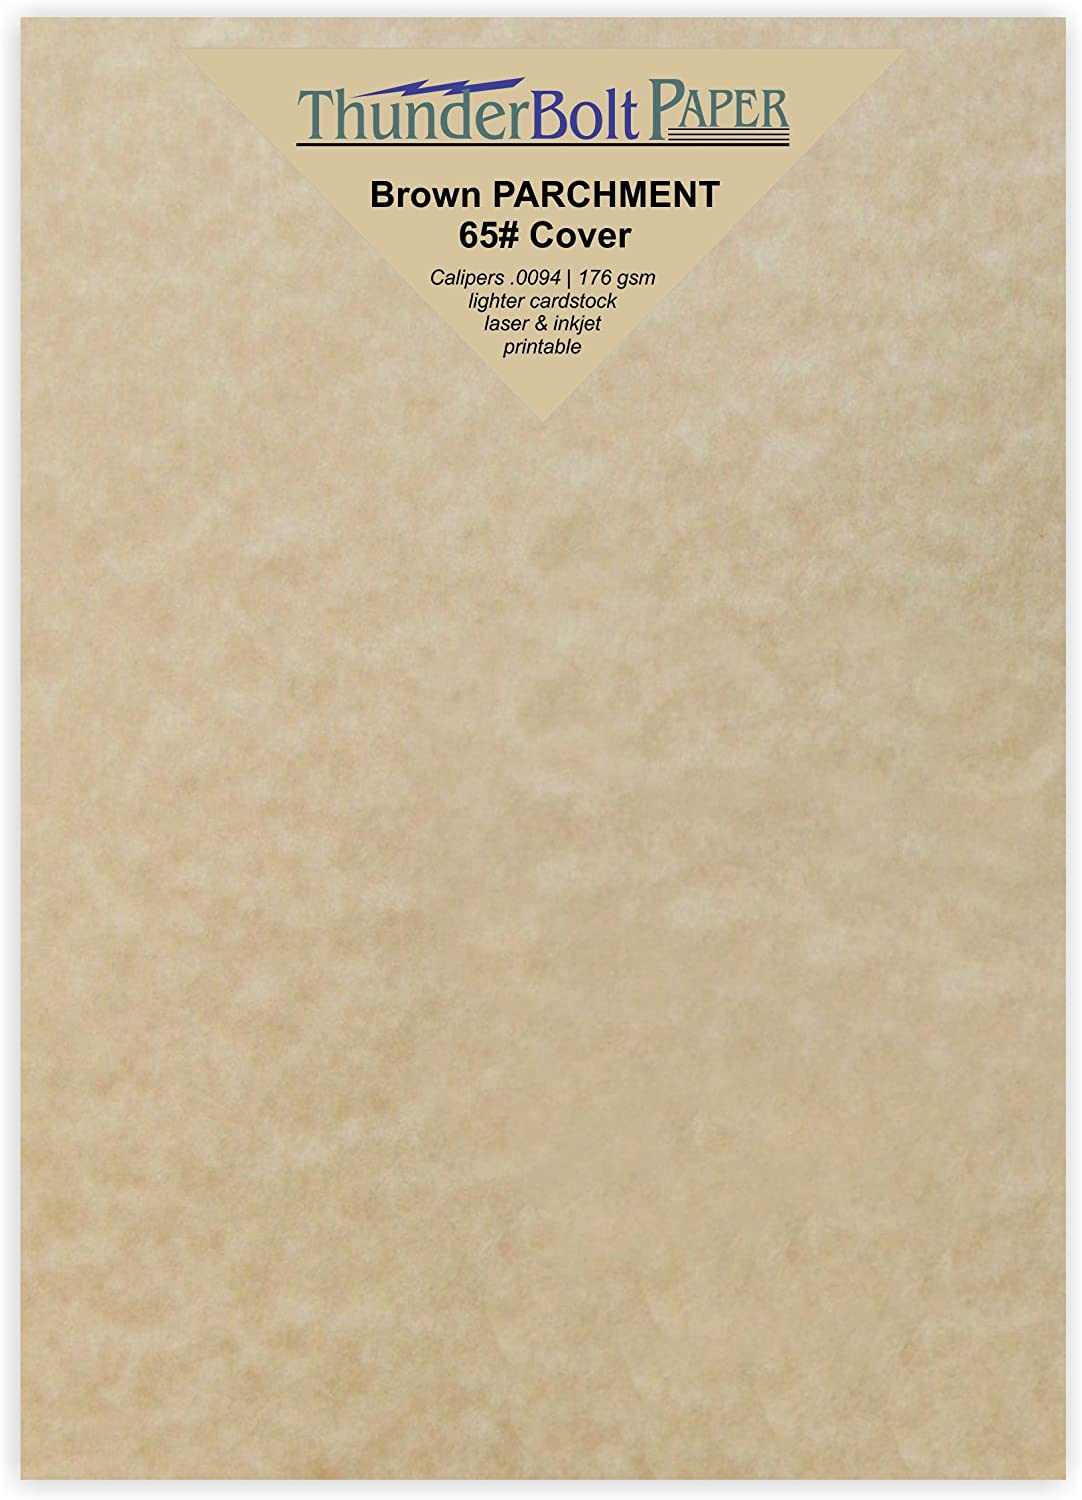 """100 Sandy Brown Parchment 65lb Cover Weight Paper - 5"""" X 7"""" (5X7 Inches) Photo